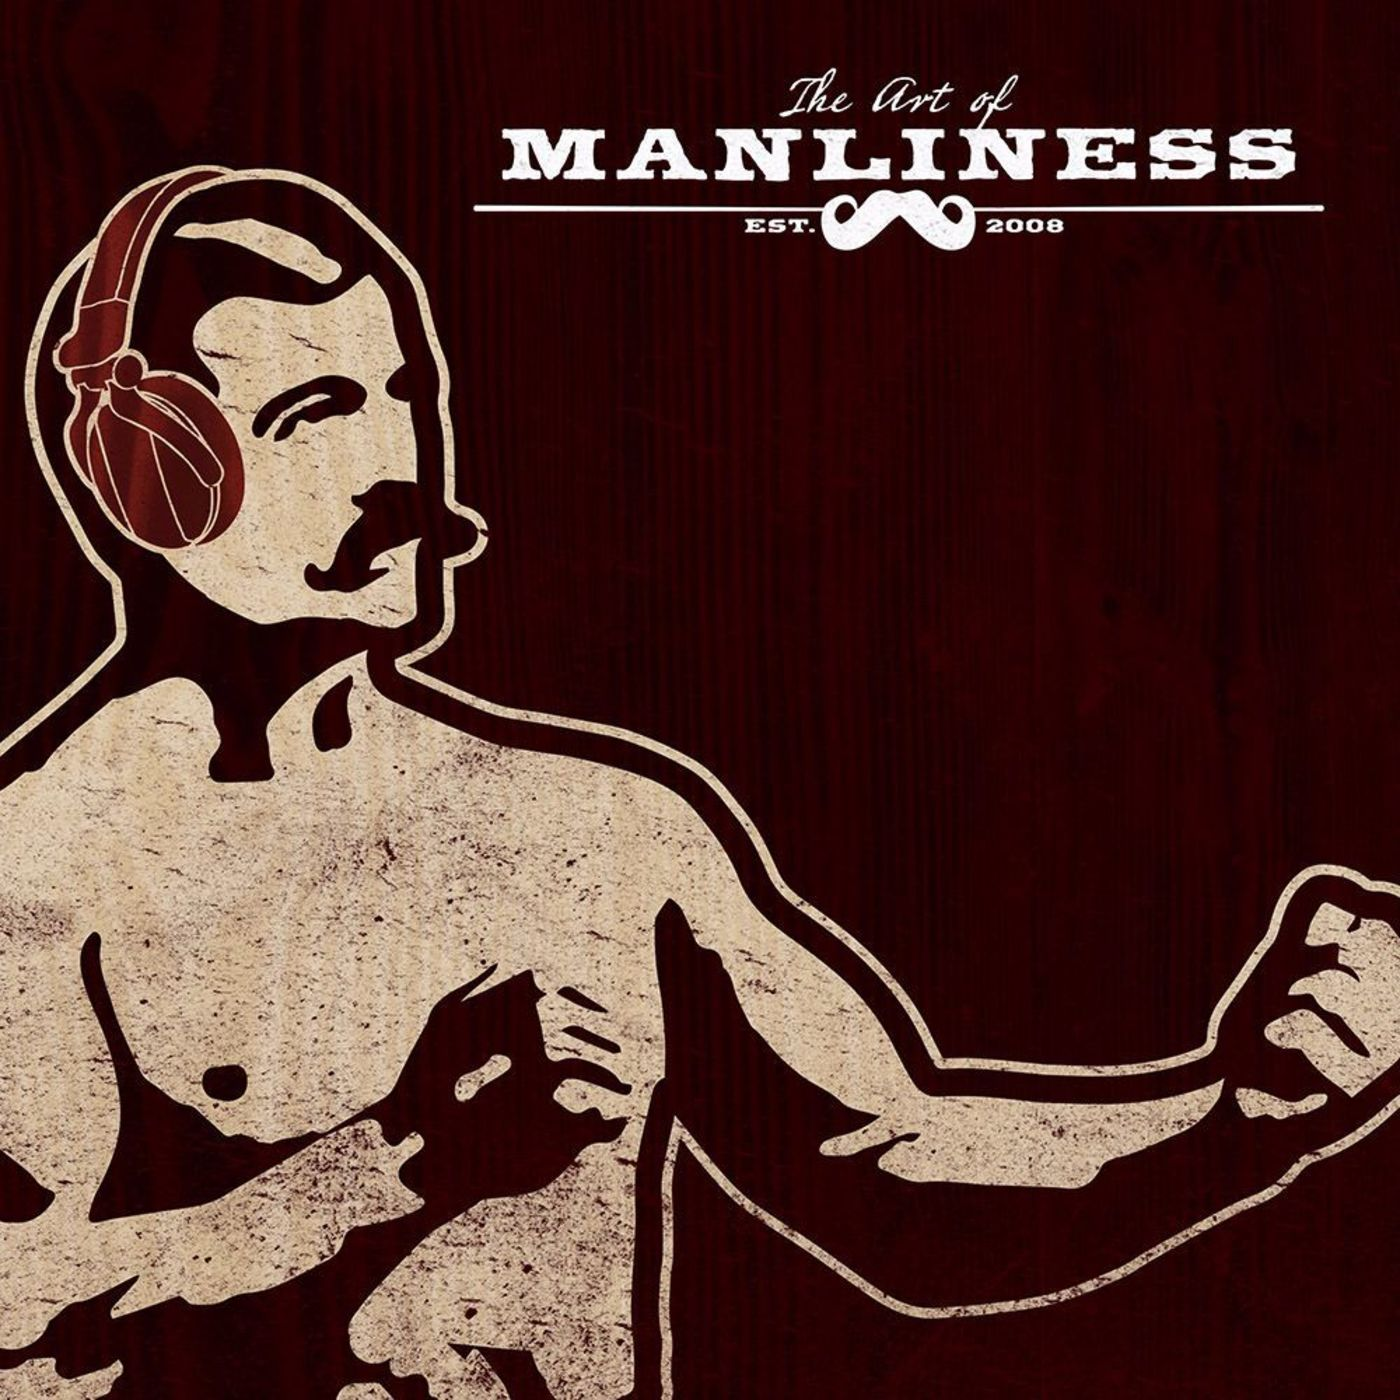 The art of manliness malvernweather Image collections